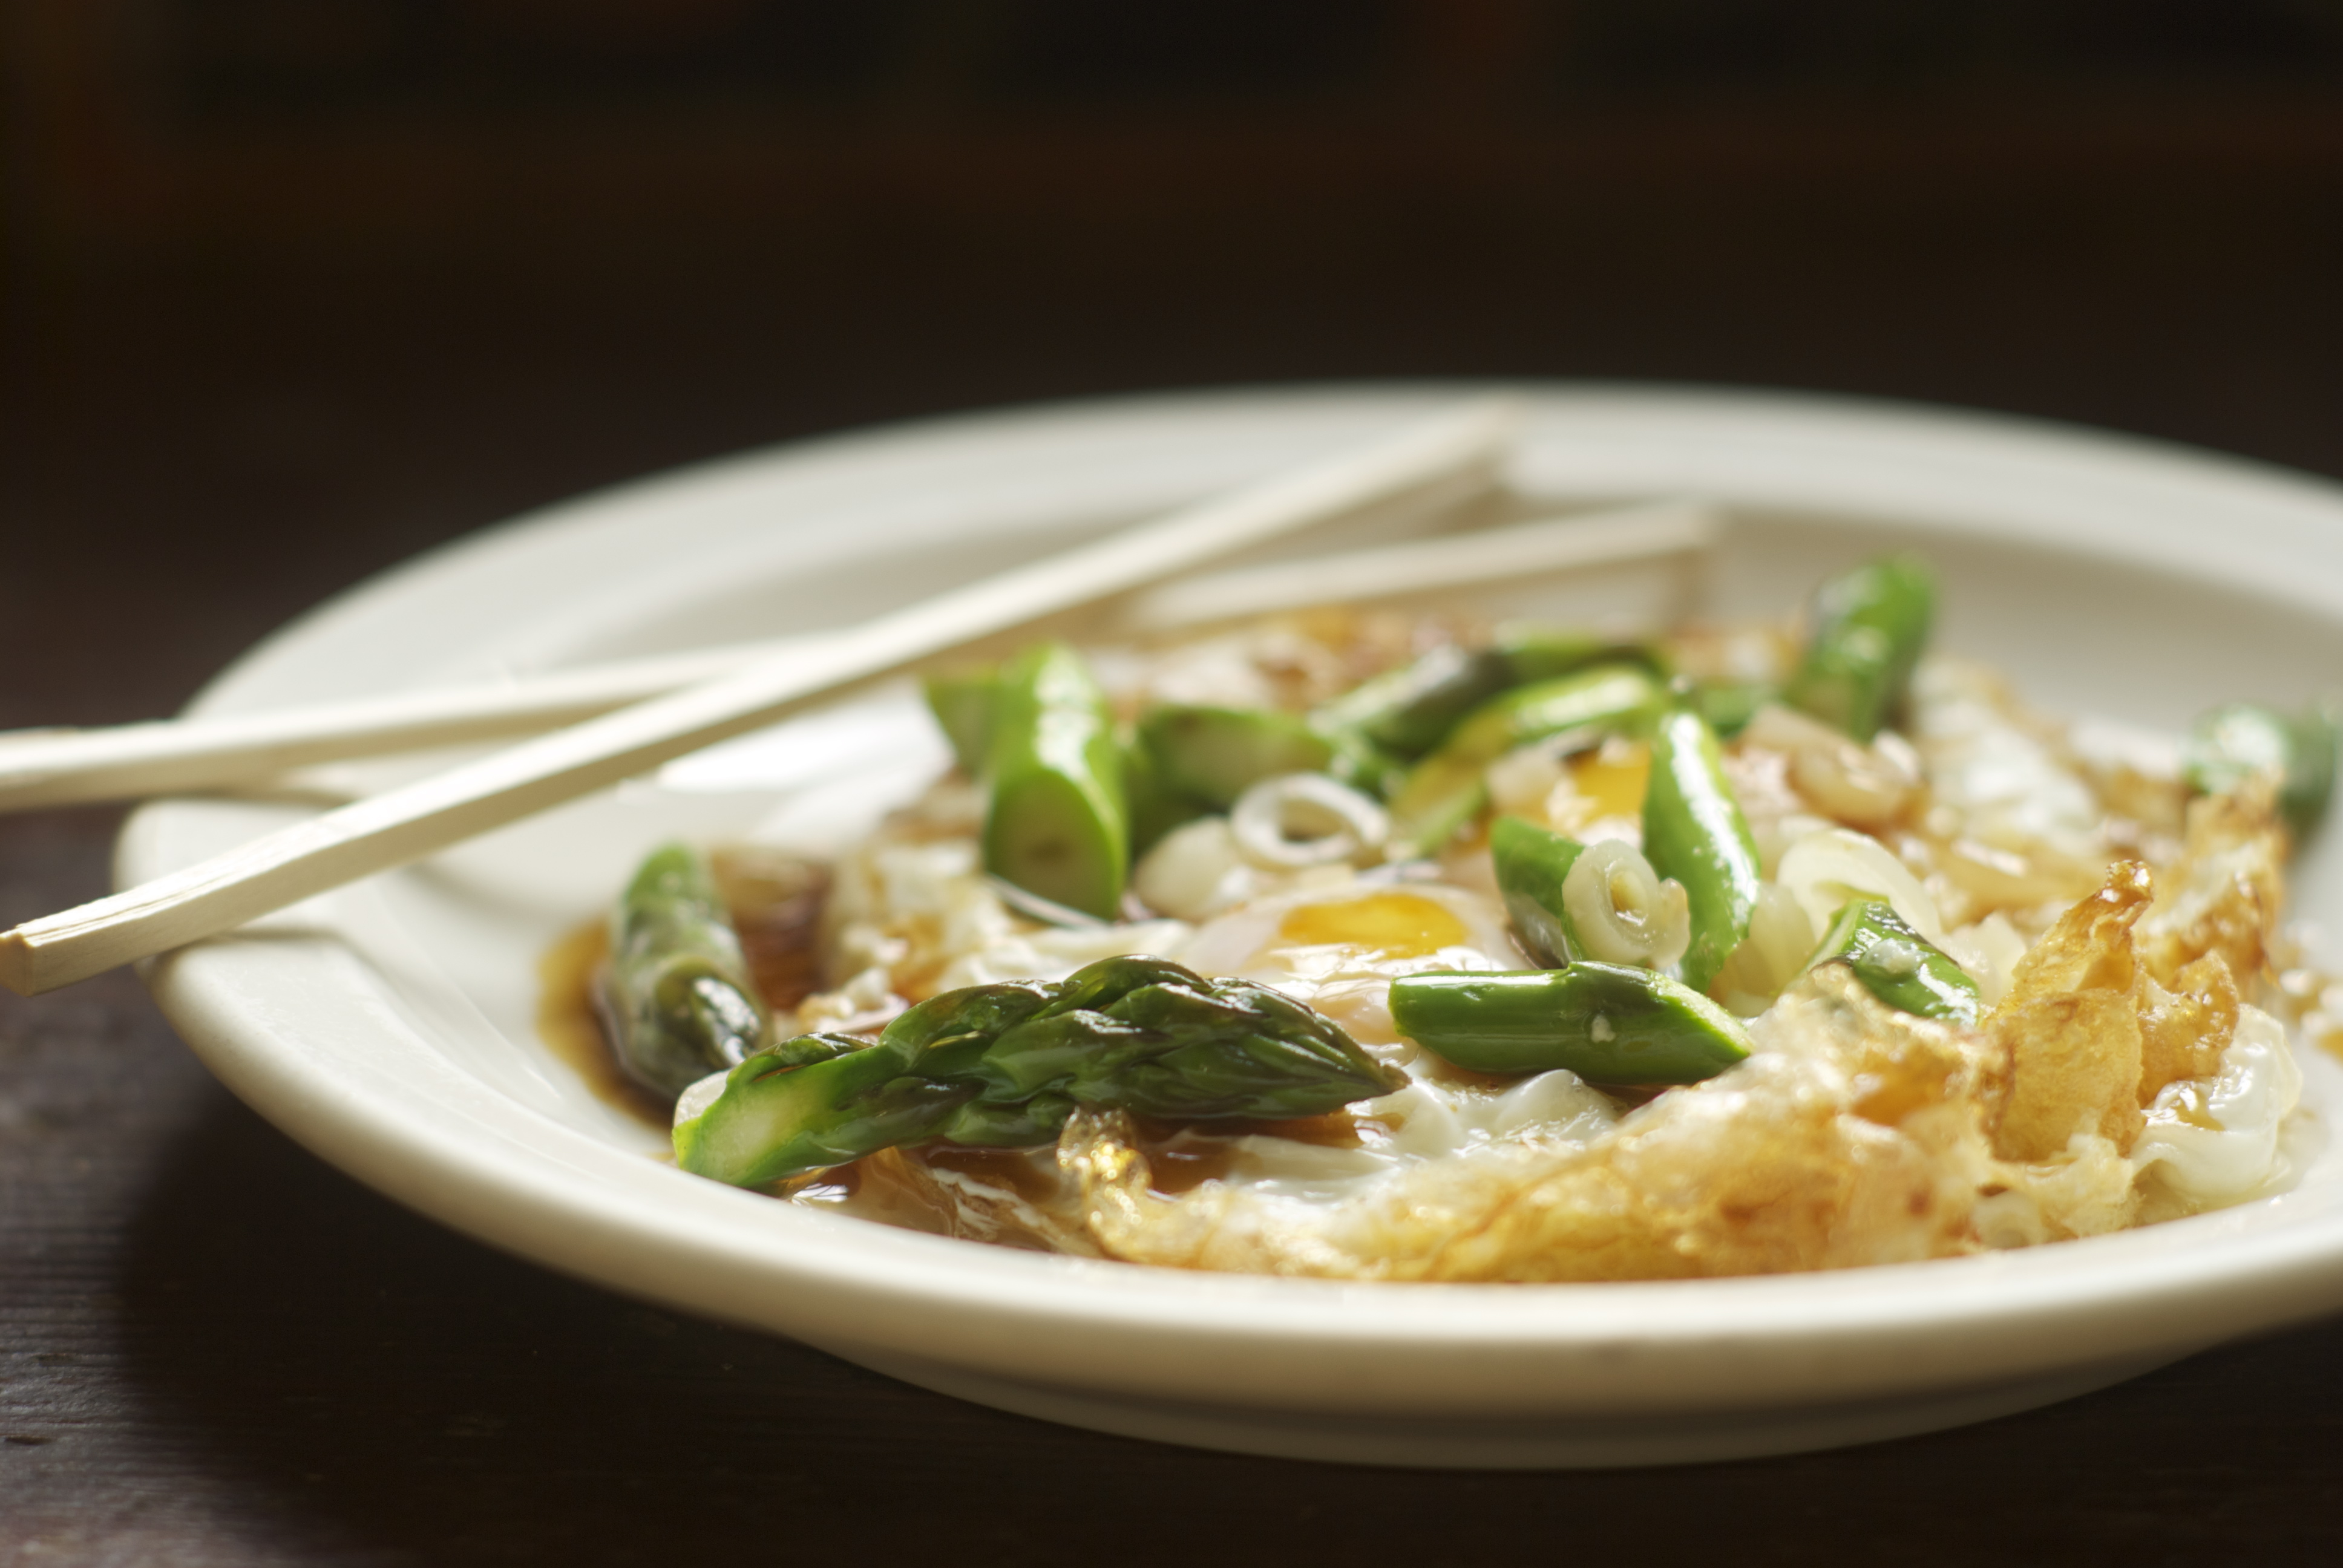 Fried Eggs with Asparagus, Ramps, and Oyster Sauce